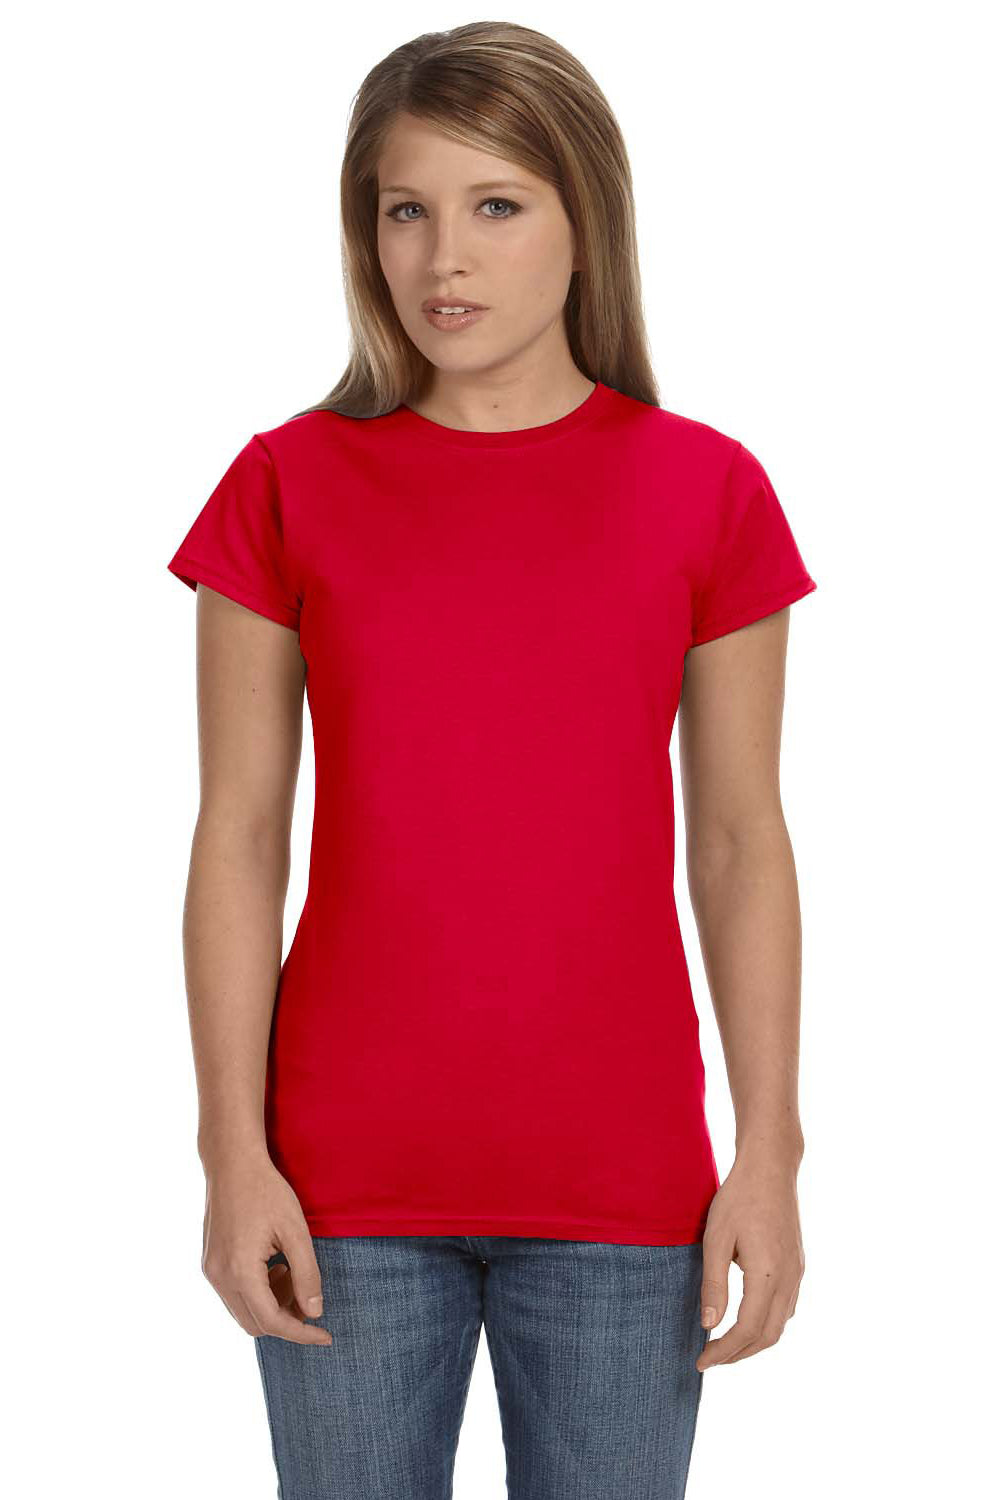 Gildan G640L Womens Softstyle Short Sleeve Crewneck T-Shirt Red Front